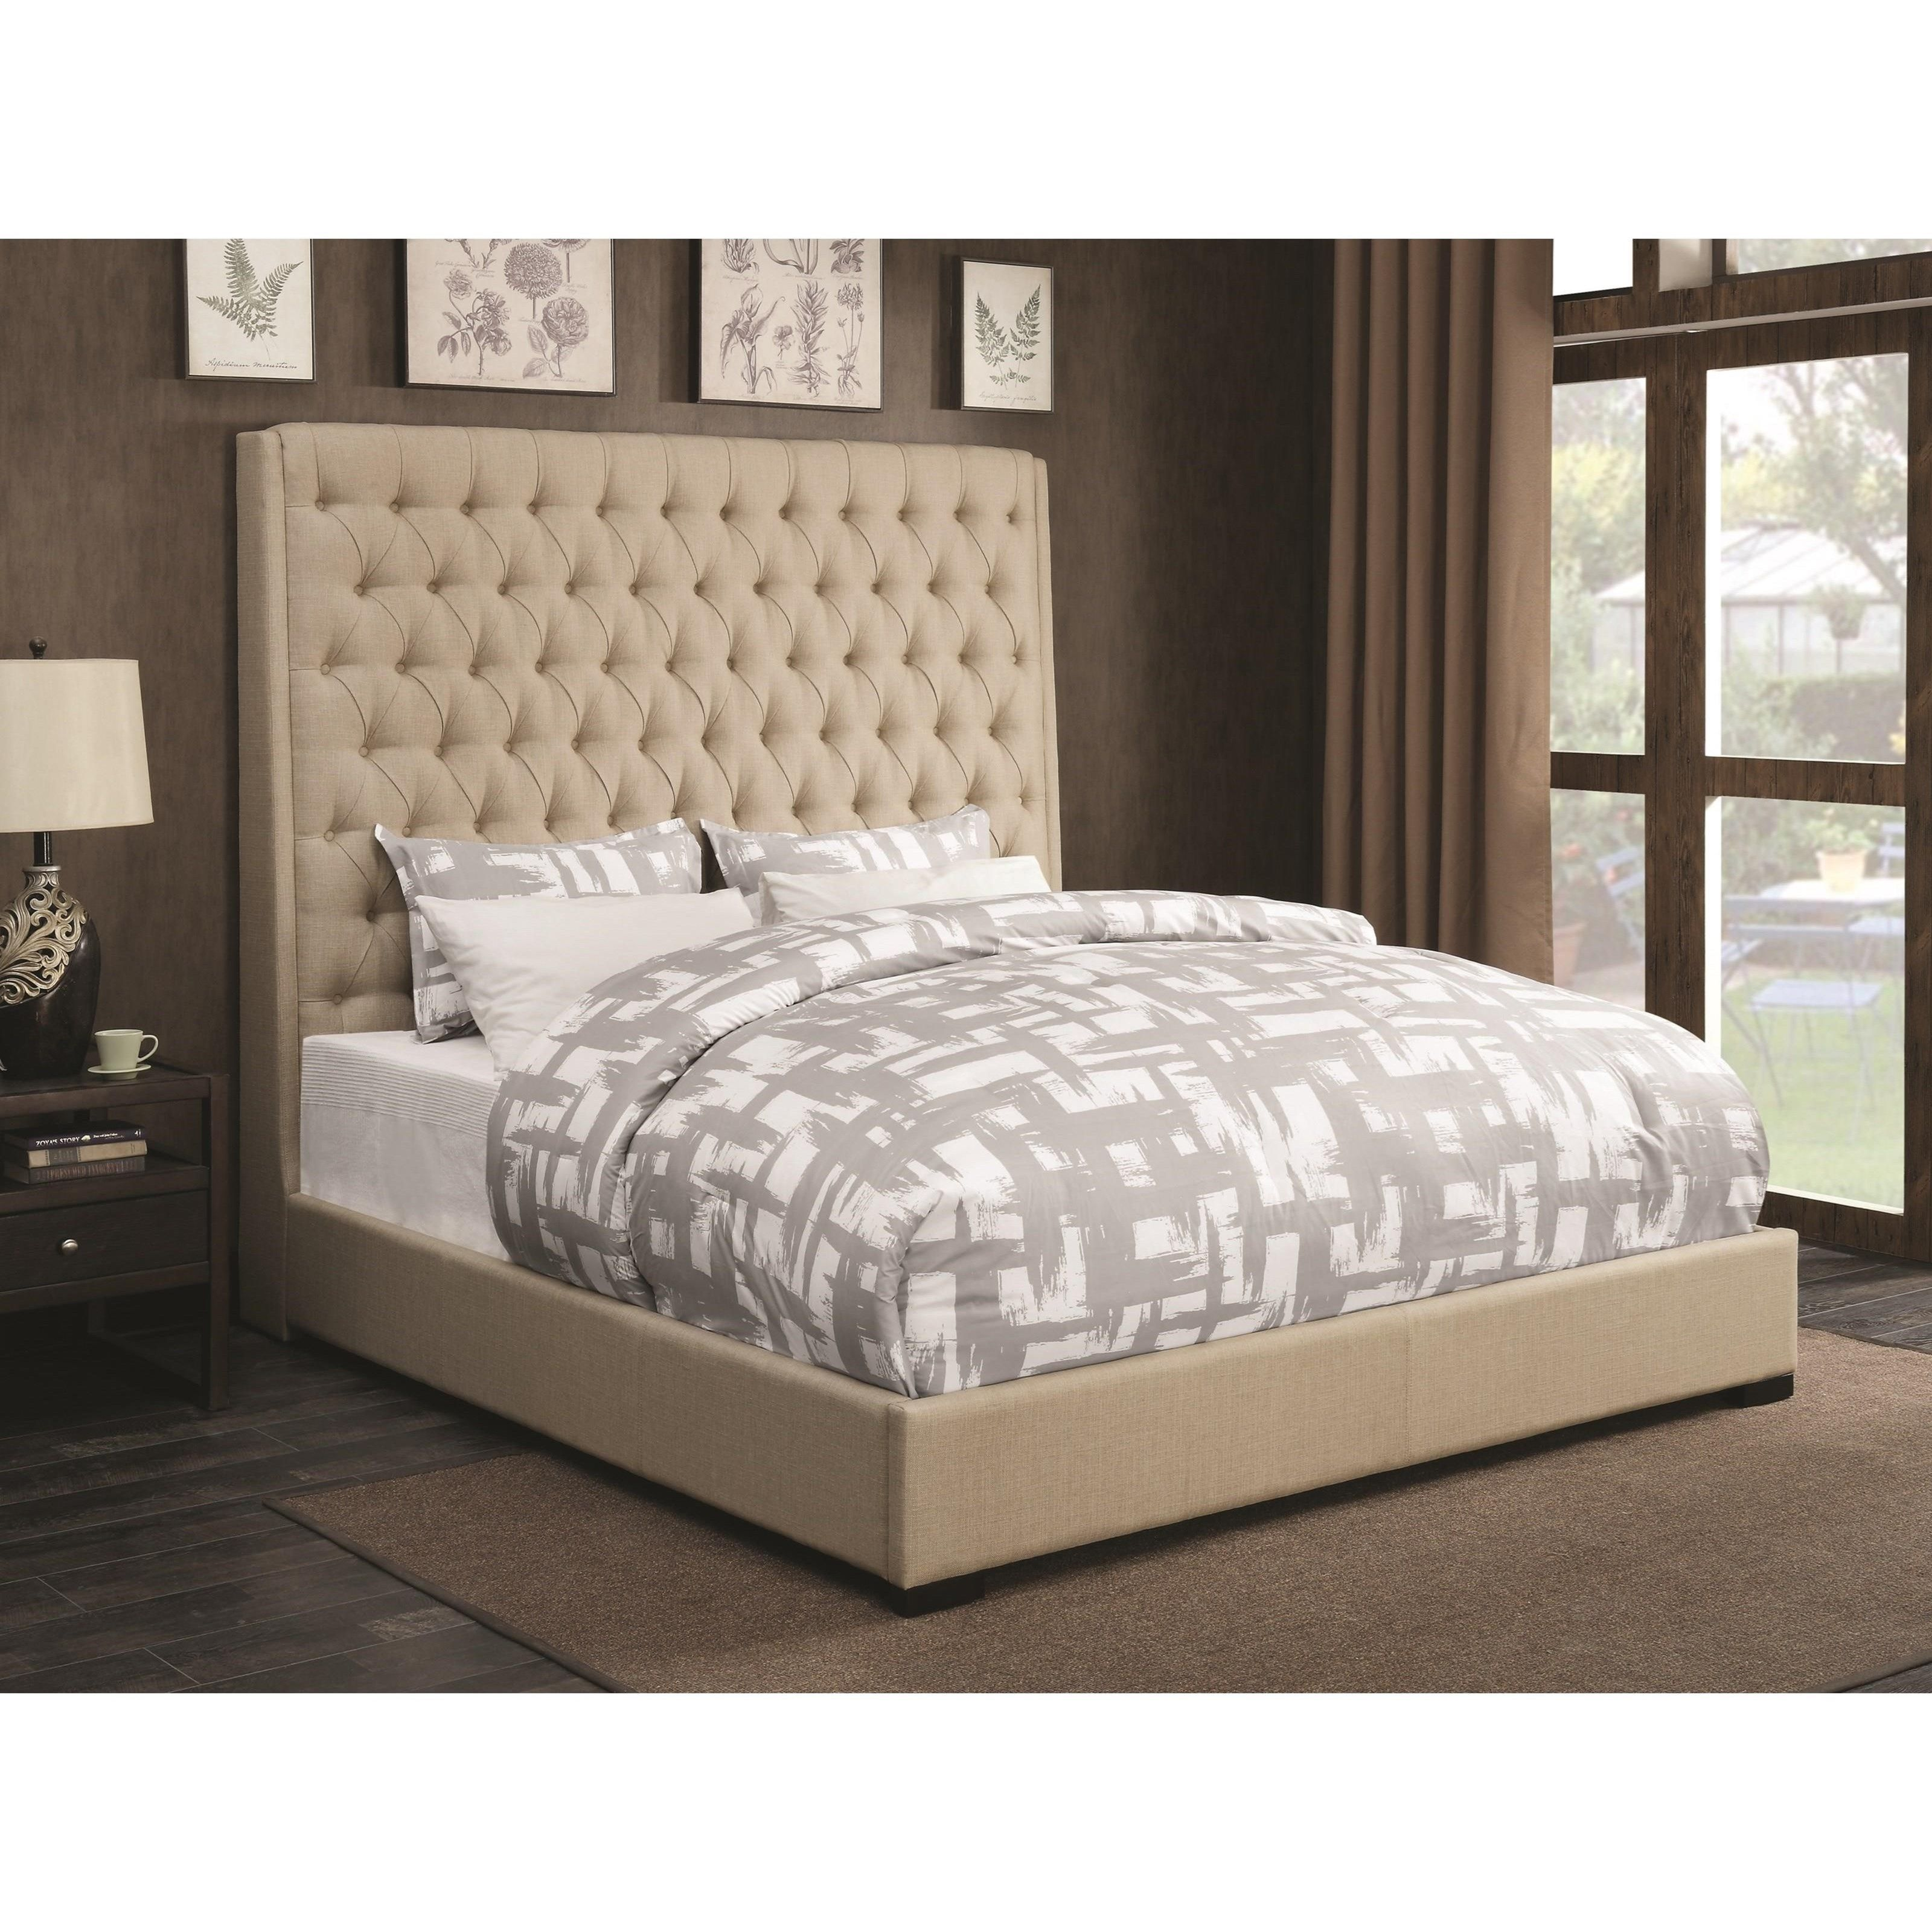 coaster upholstered beds upholstered king bed with diamond tufting